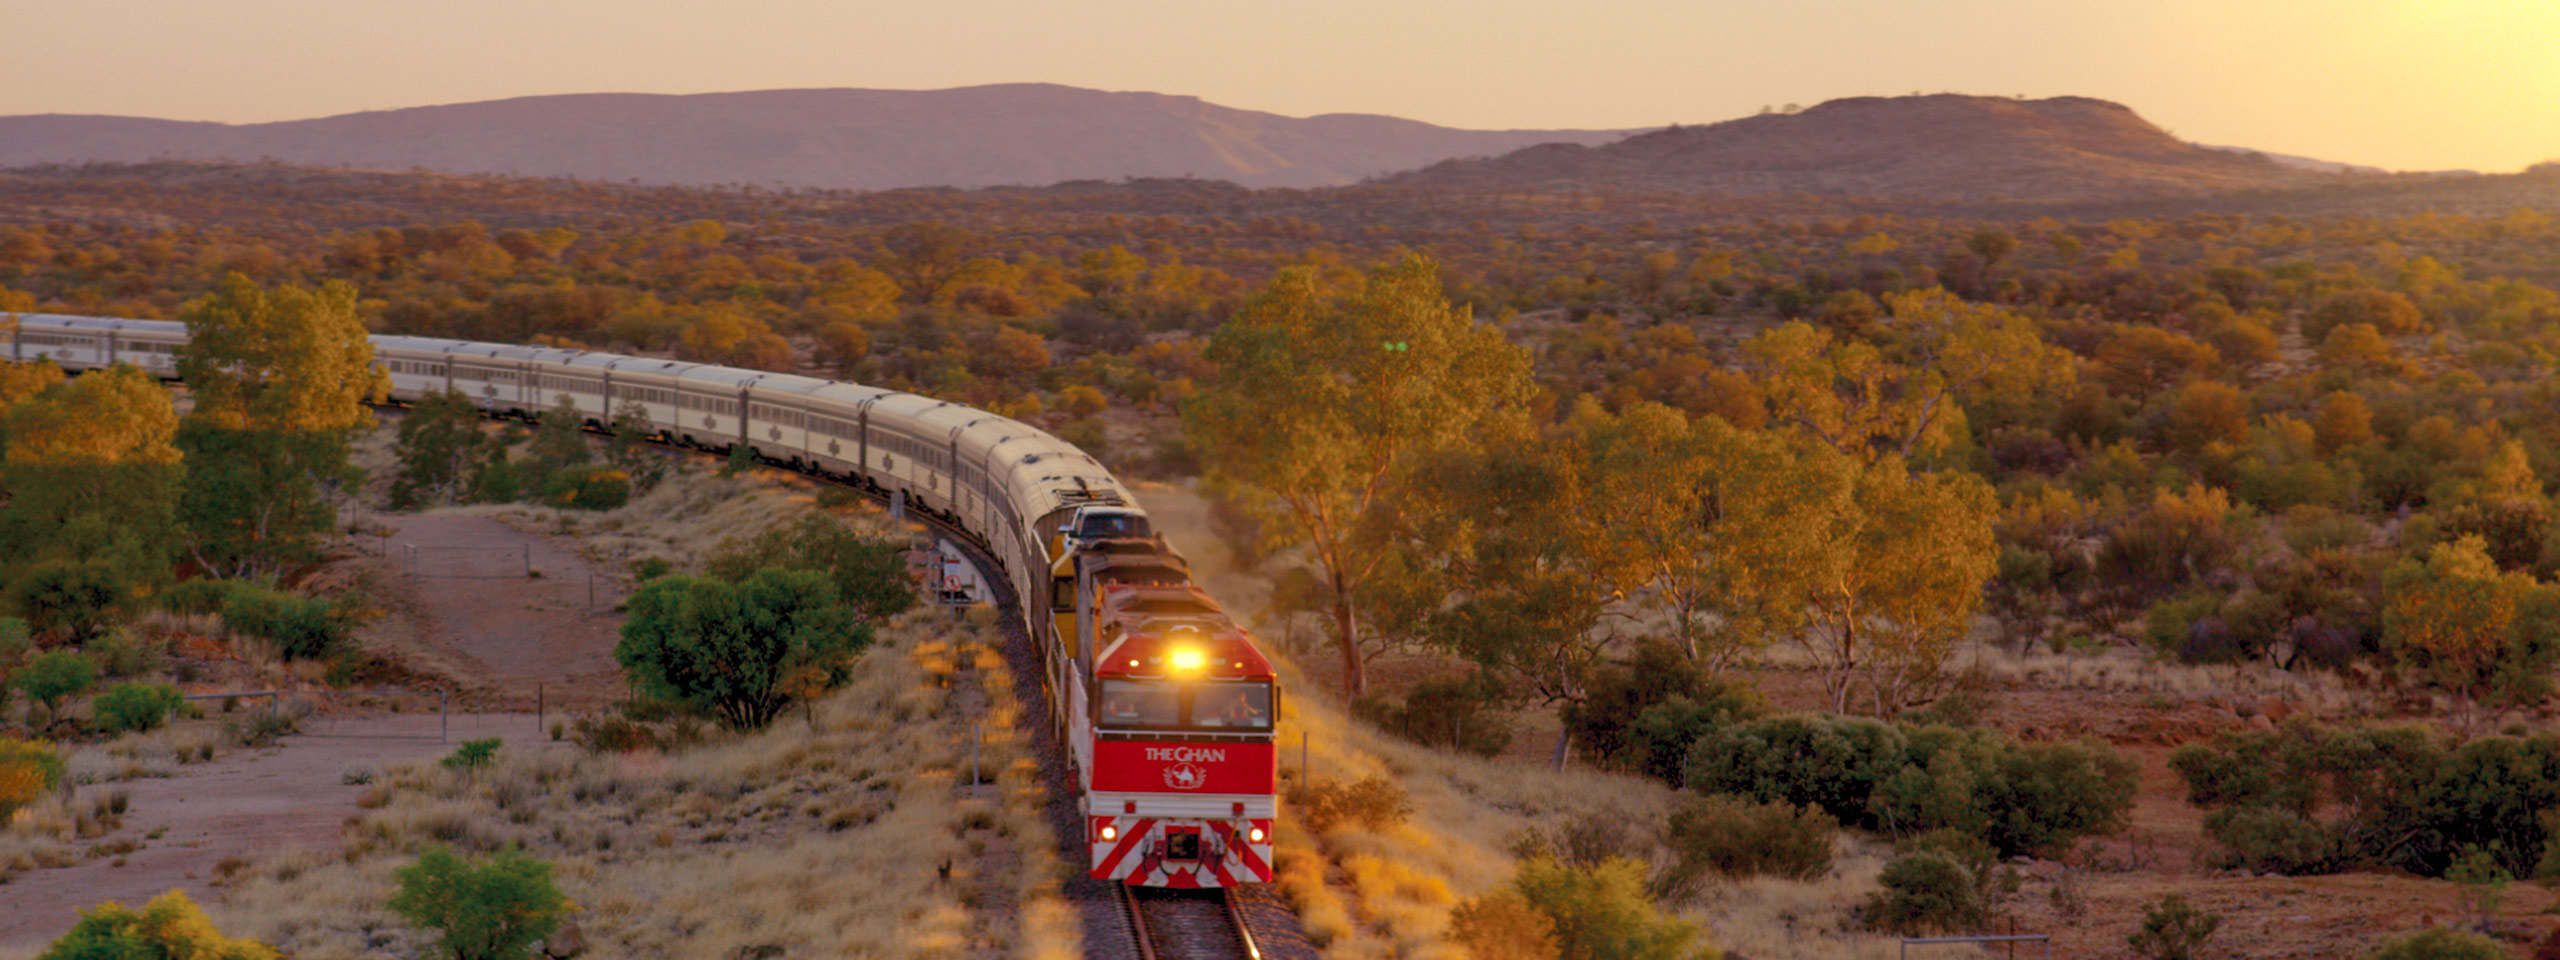 The Ghan Train Journey